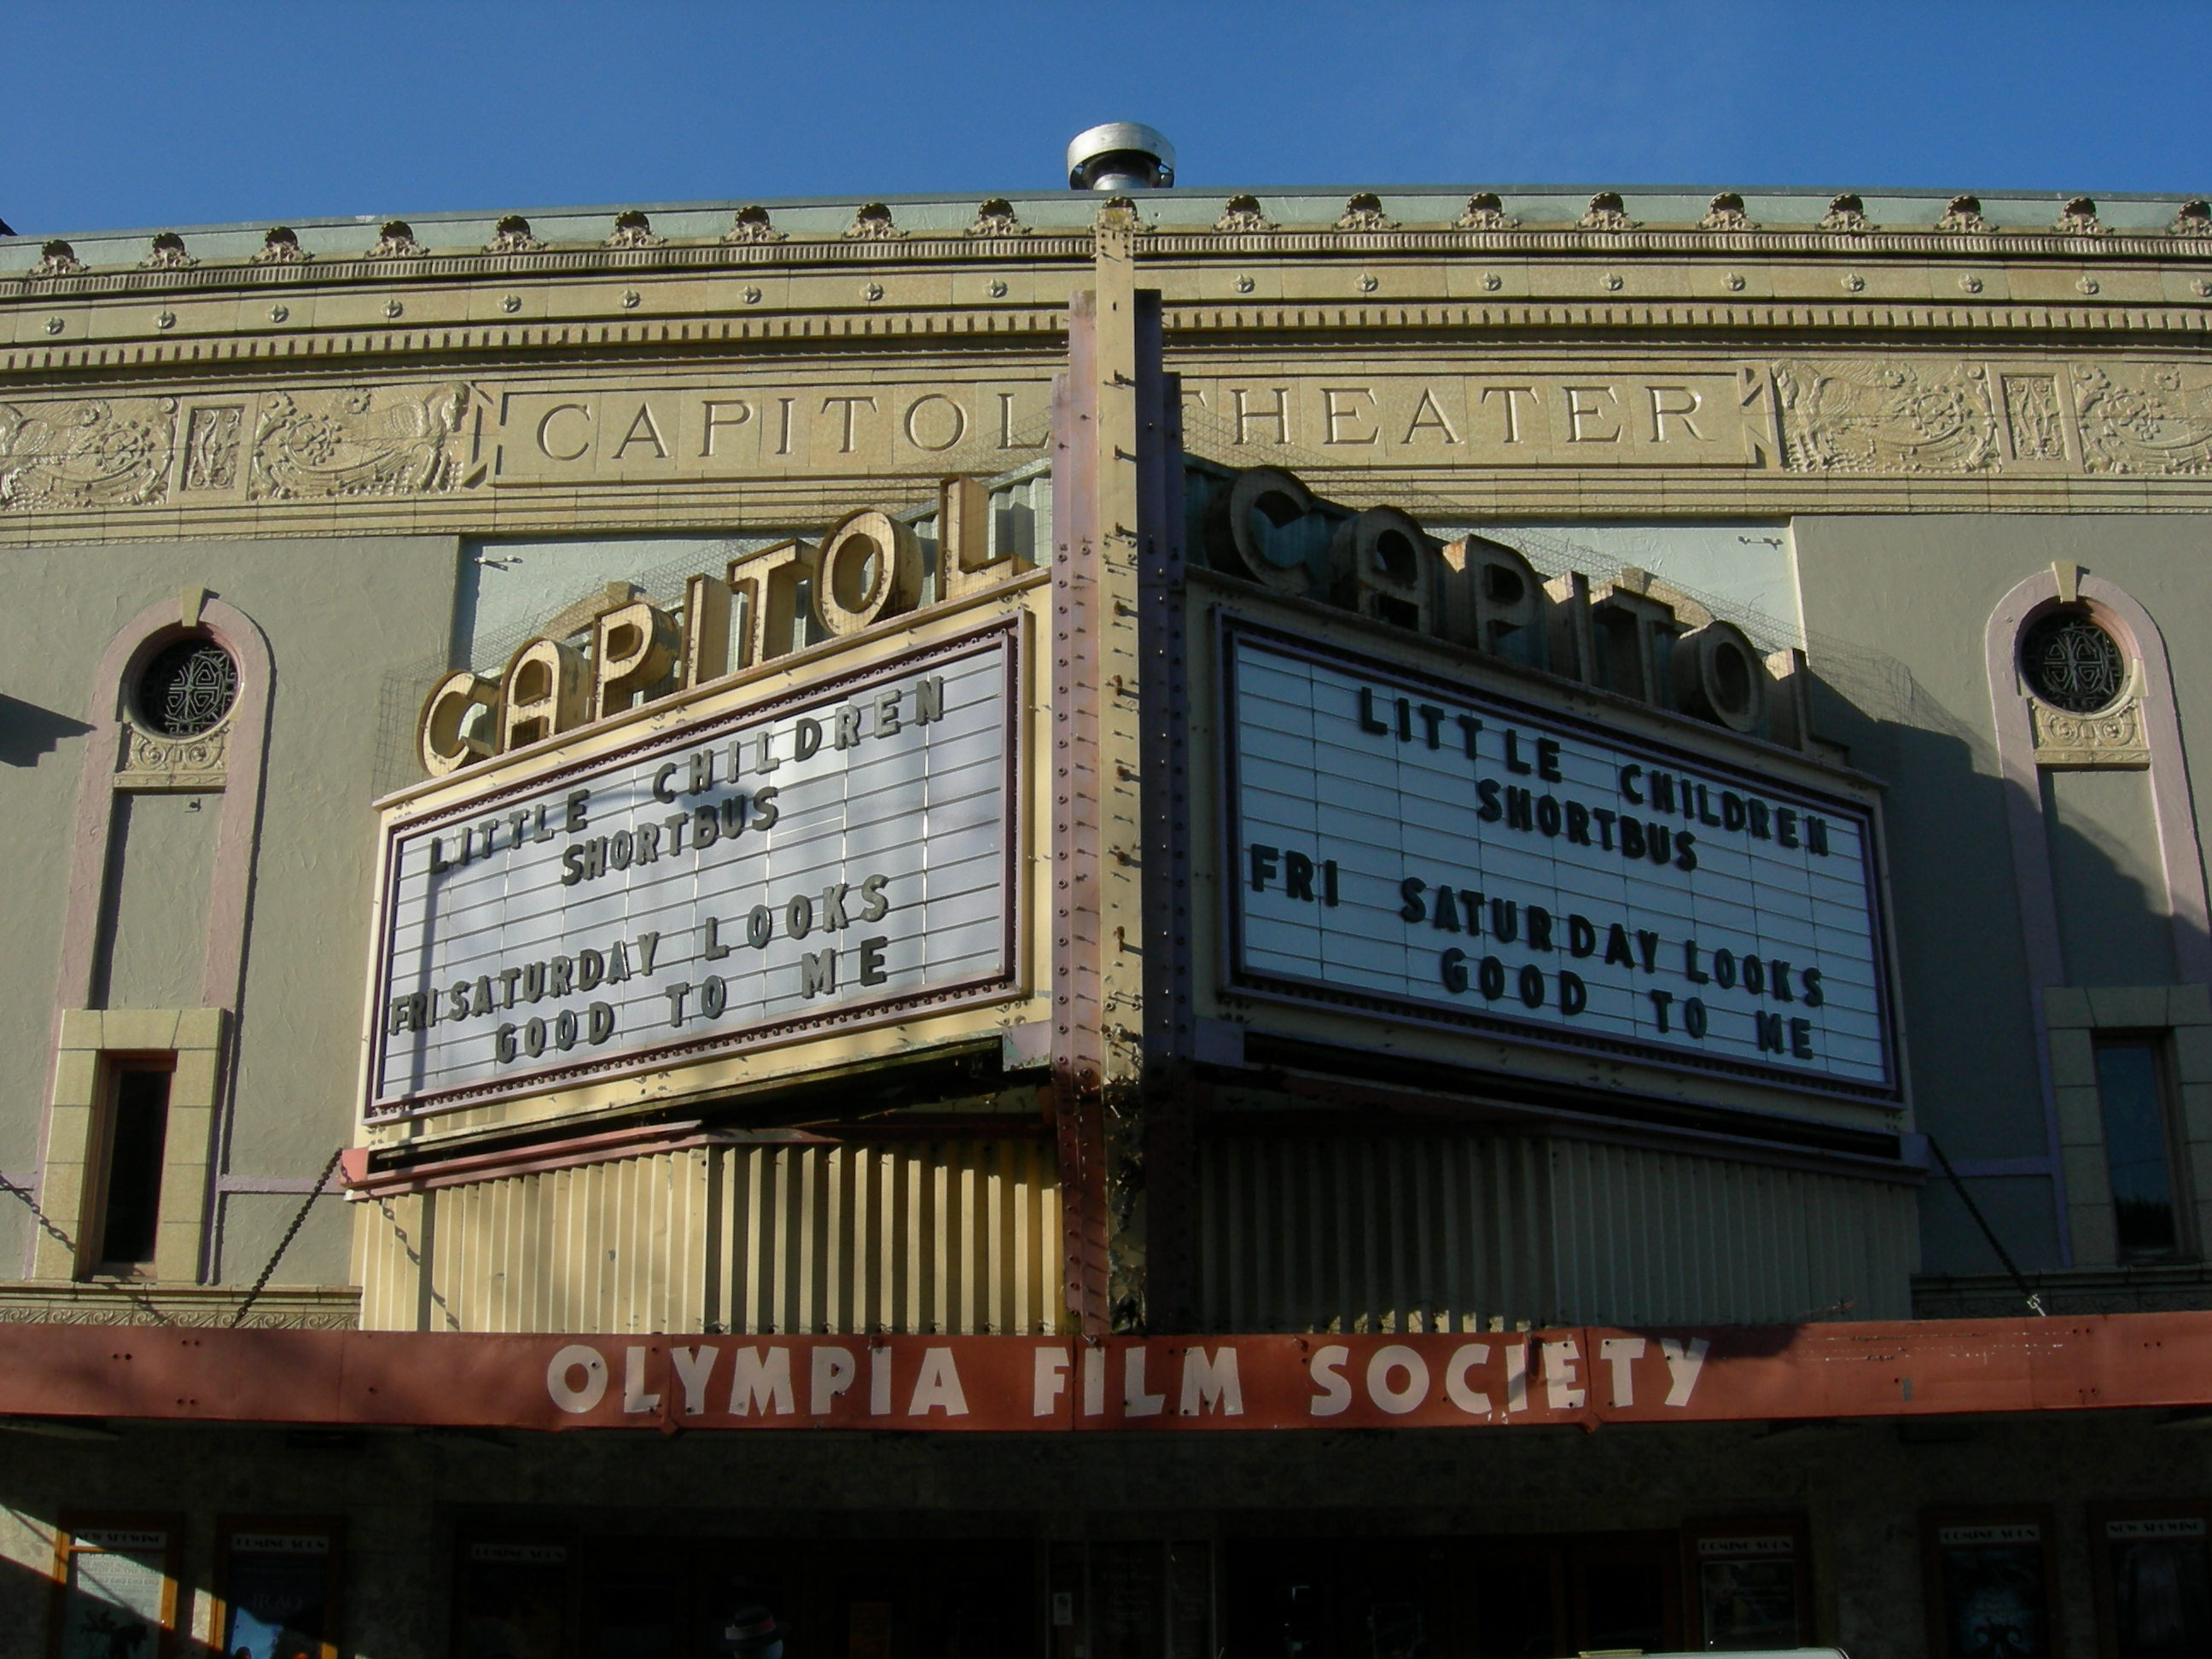 This theater has been primarily volunteer run for over 25 years.